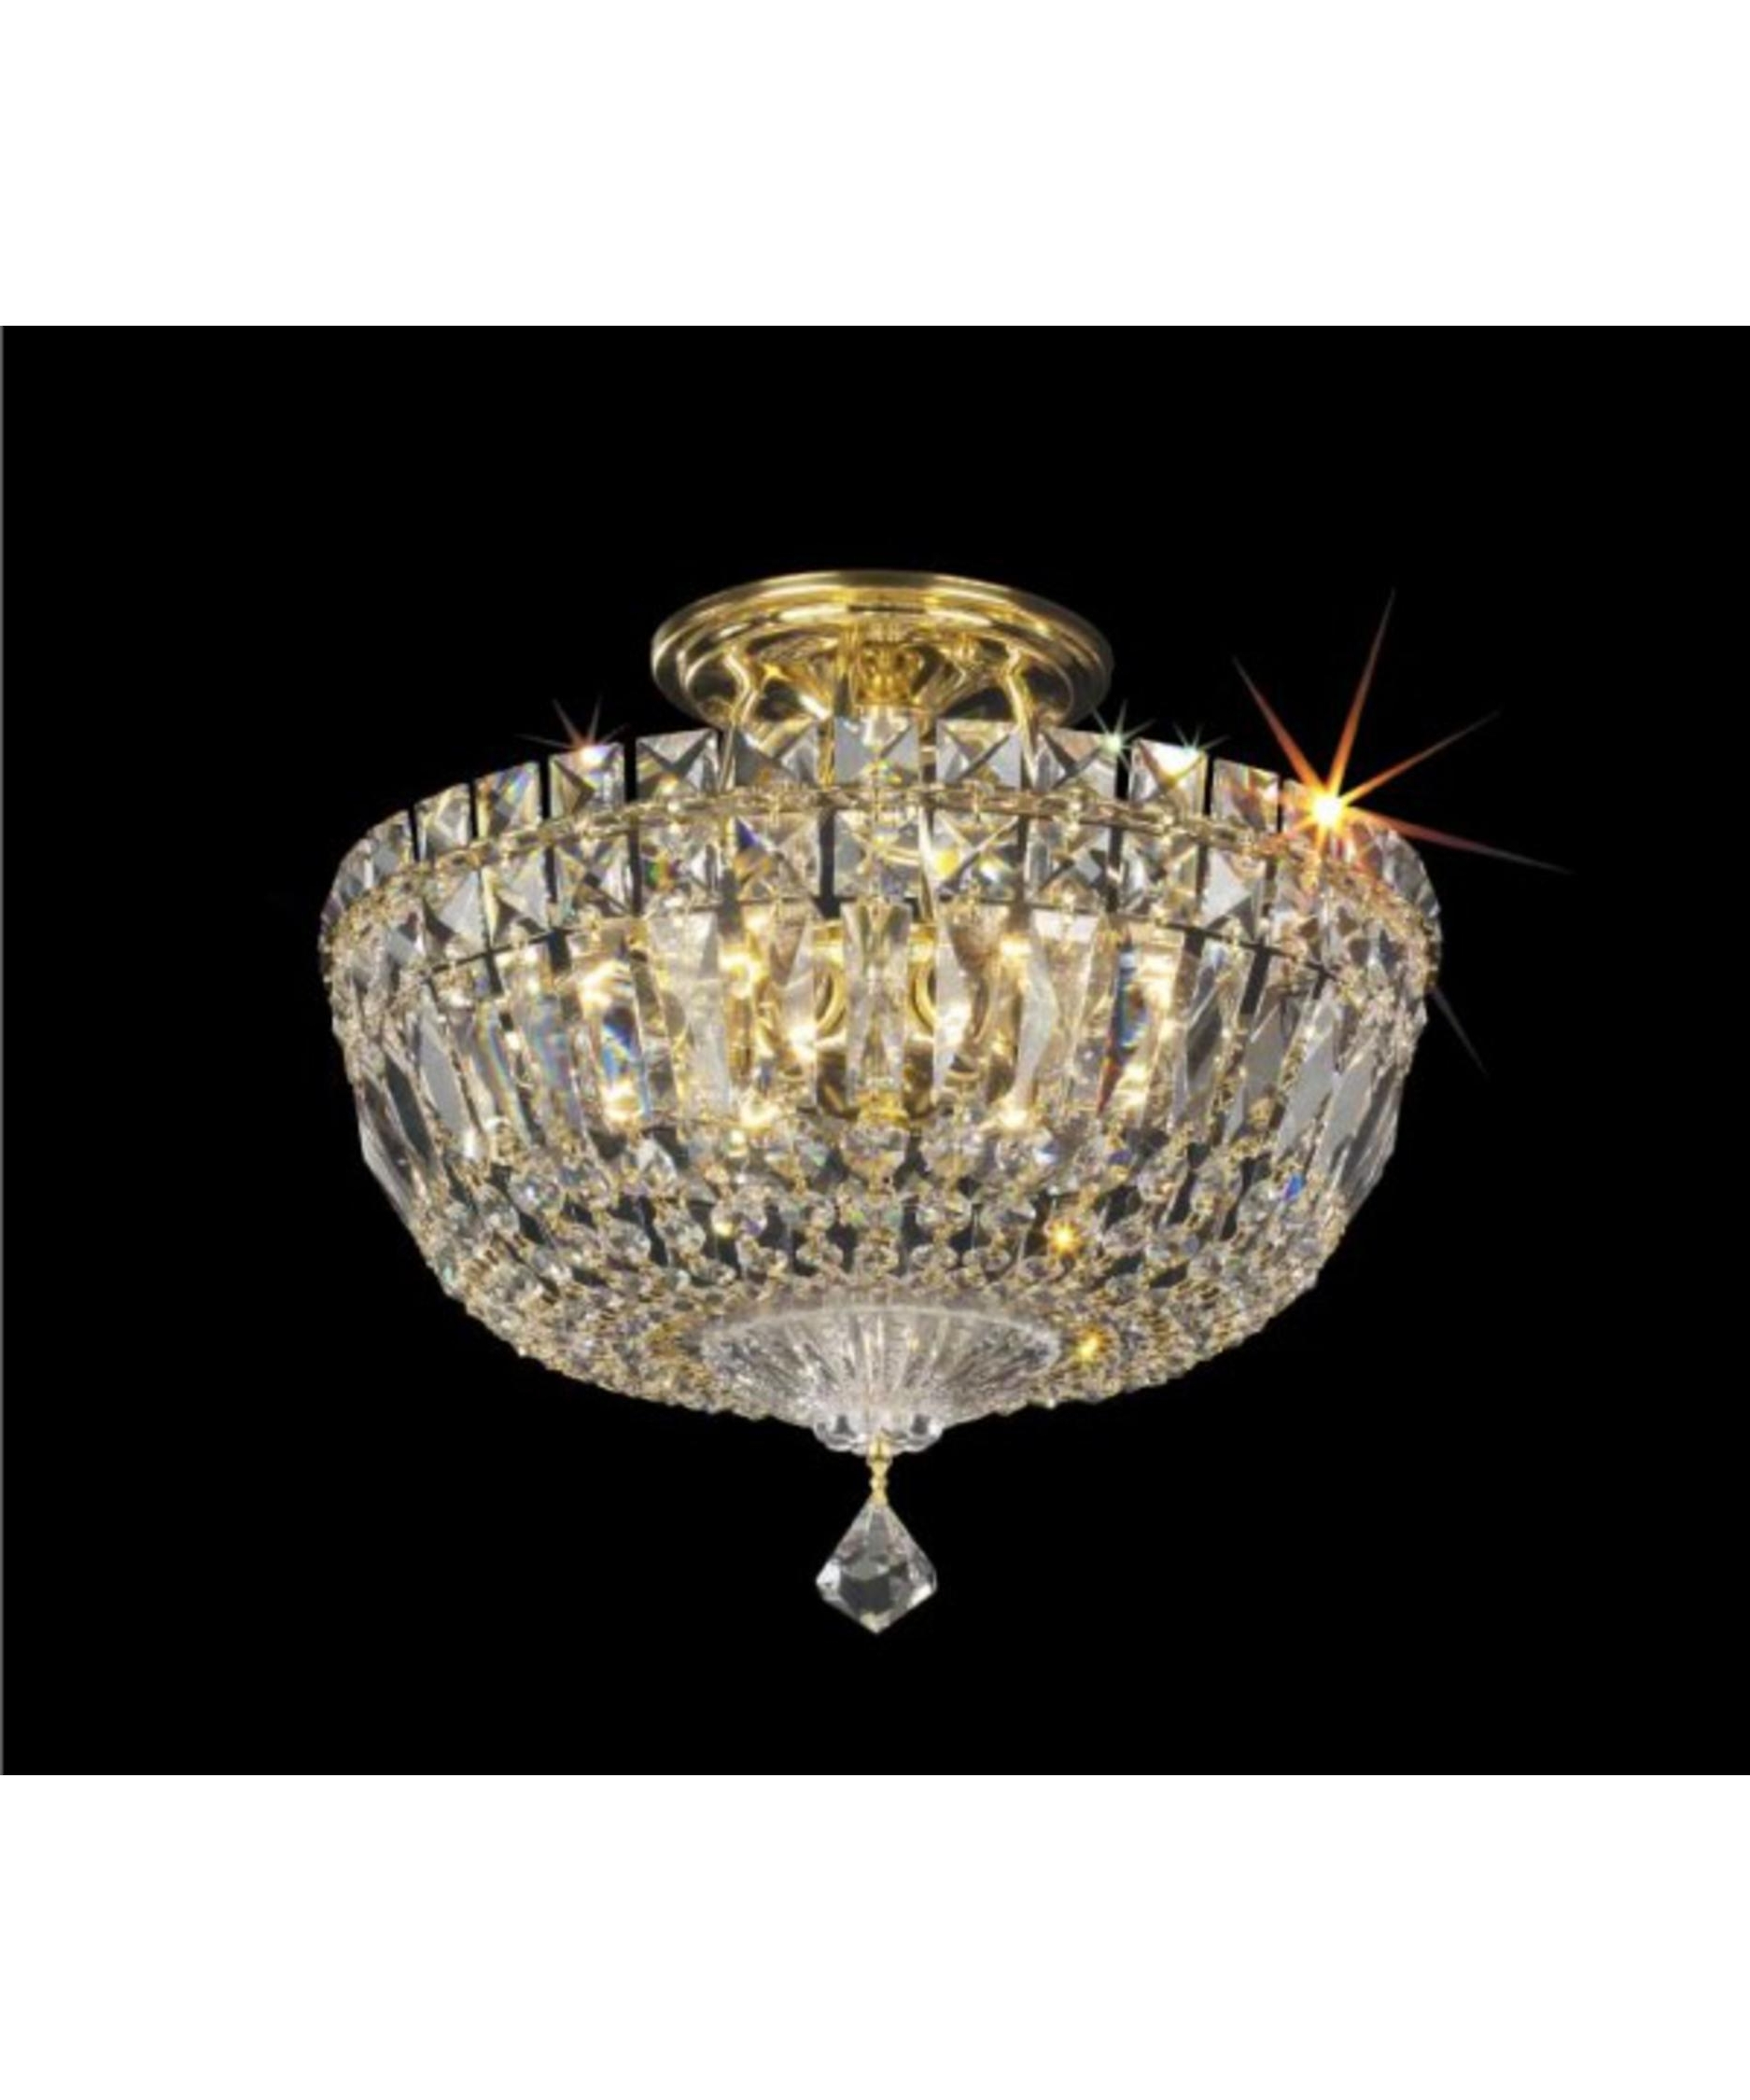 Wall Mount Crystal Chandeliers With Newest Light : Lovely Crystal Semi Flush Mount Lighting In Chandelier Of (View 16 of 20)